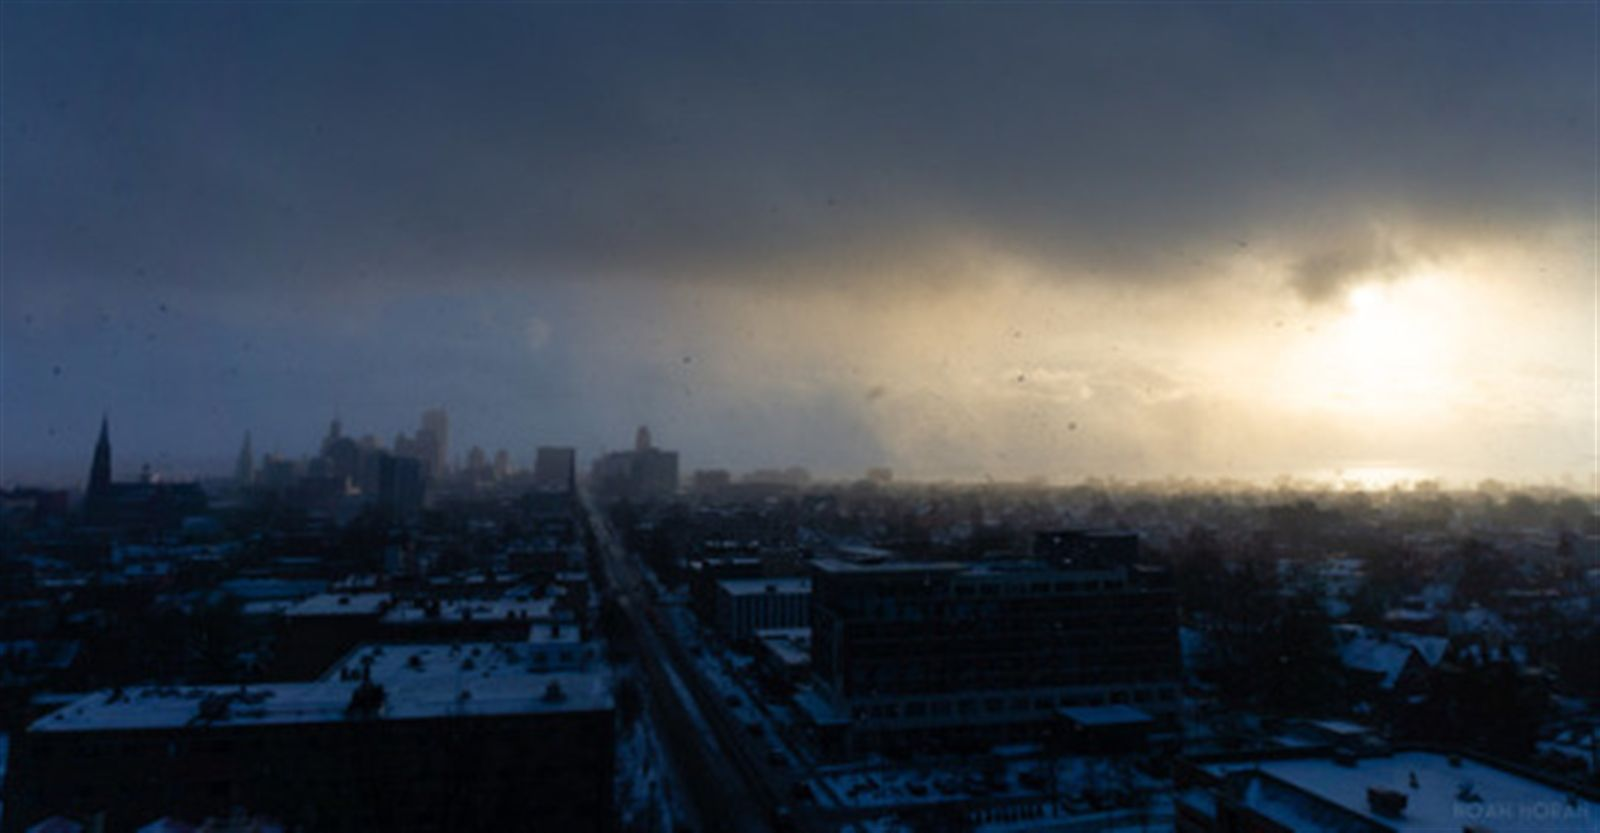 Sunlight breaks through the clouds over a snow-covered Buffalo on Jan. 19, 2020.